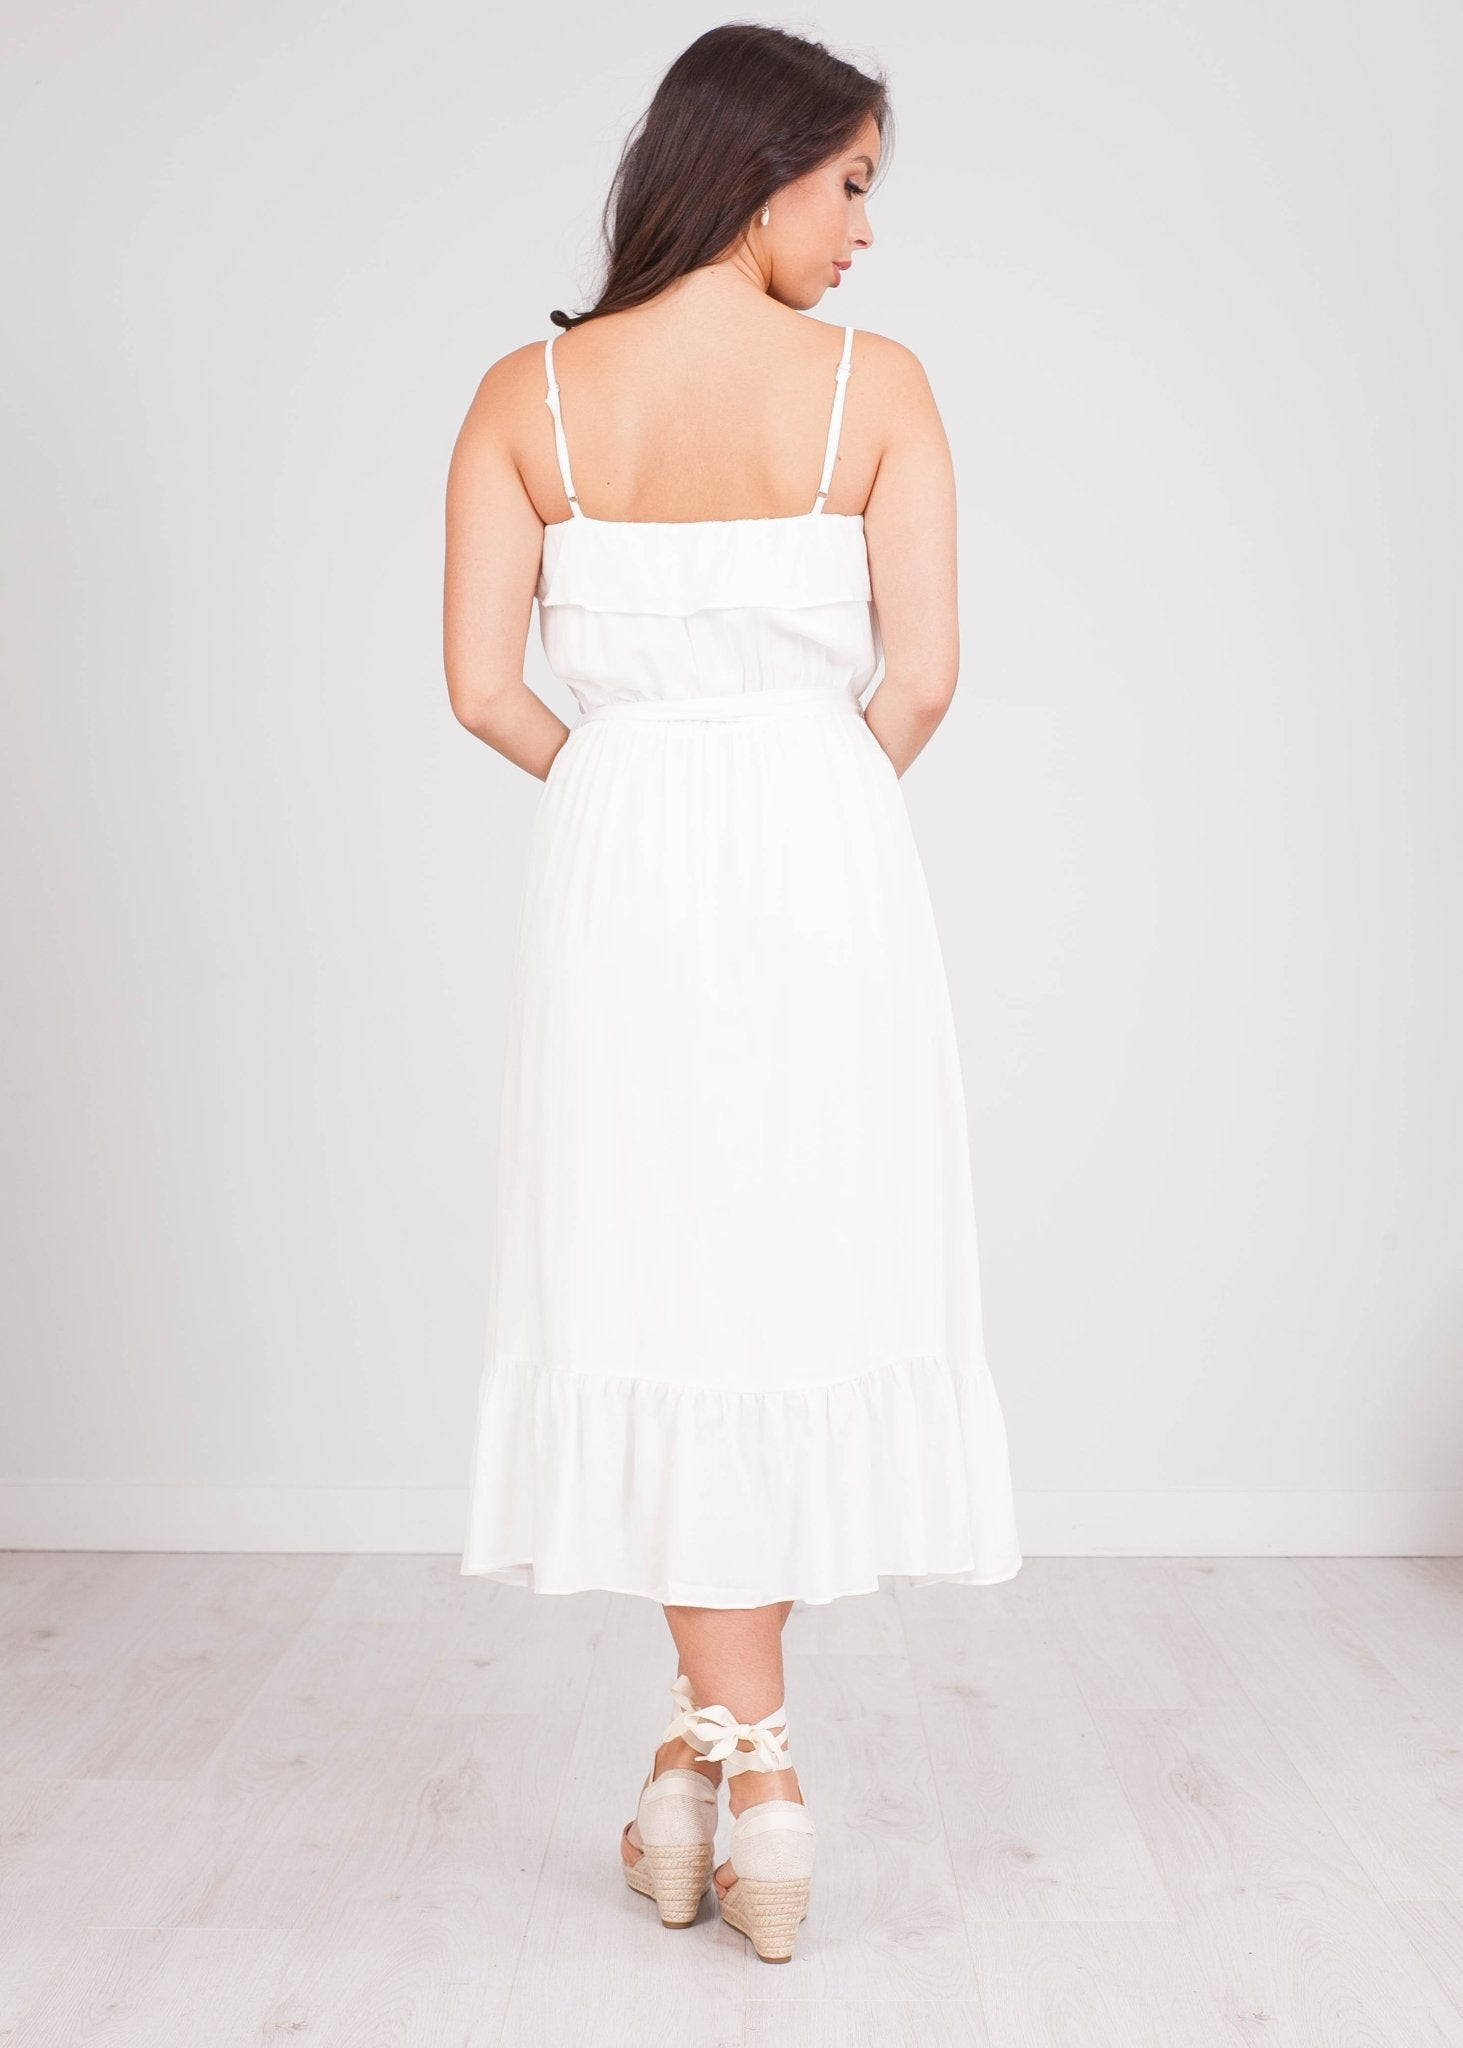 Cherie White Midi Dress - The Walk in Wardrobe